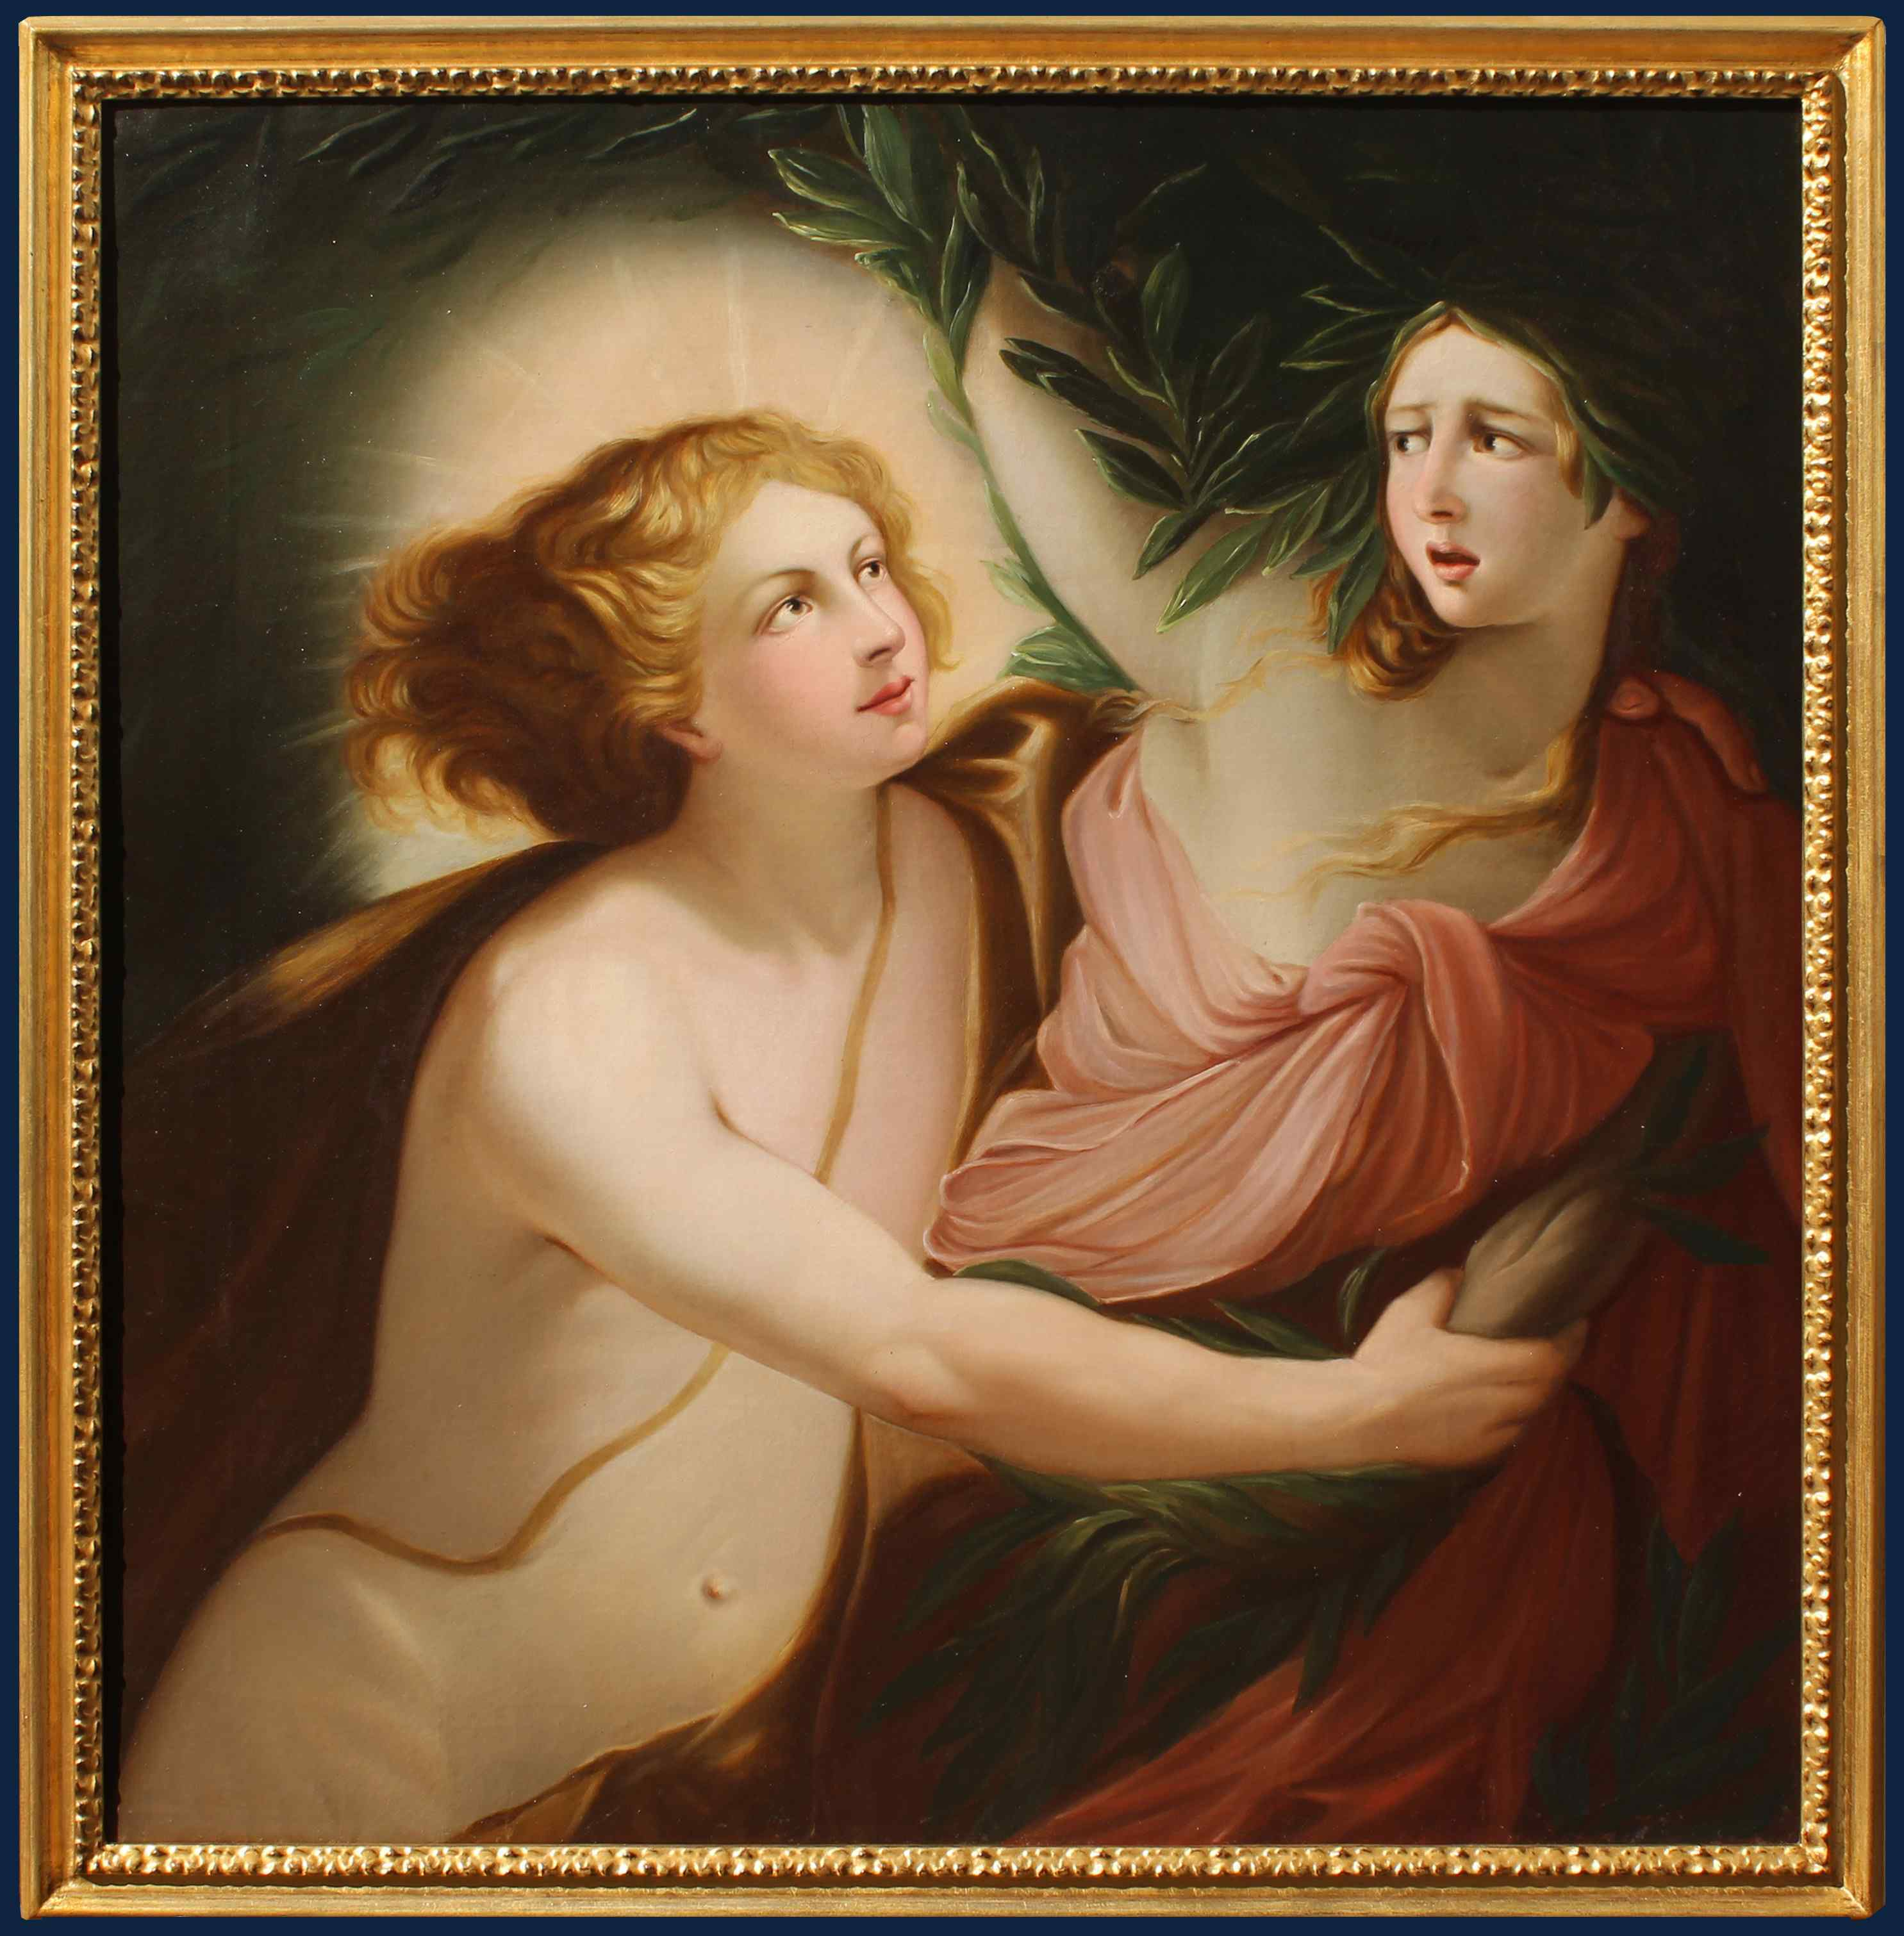 Neoclassical painter, XIX century Apollo and Daphne